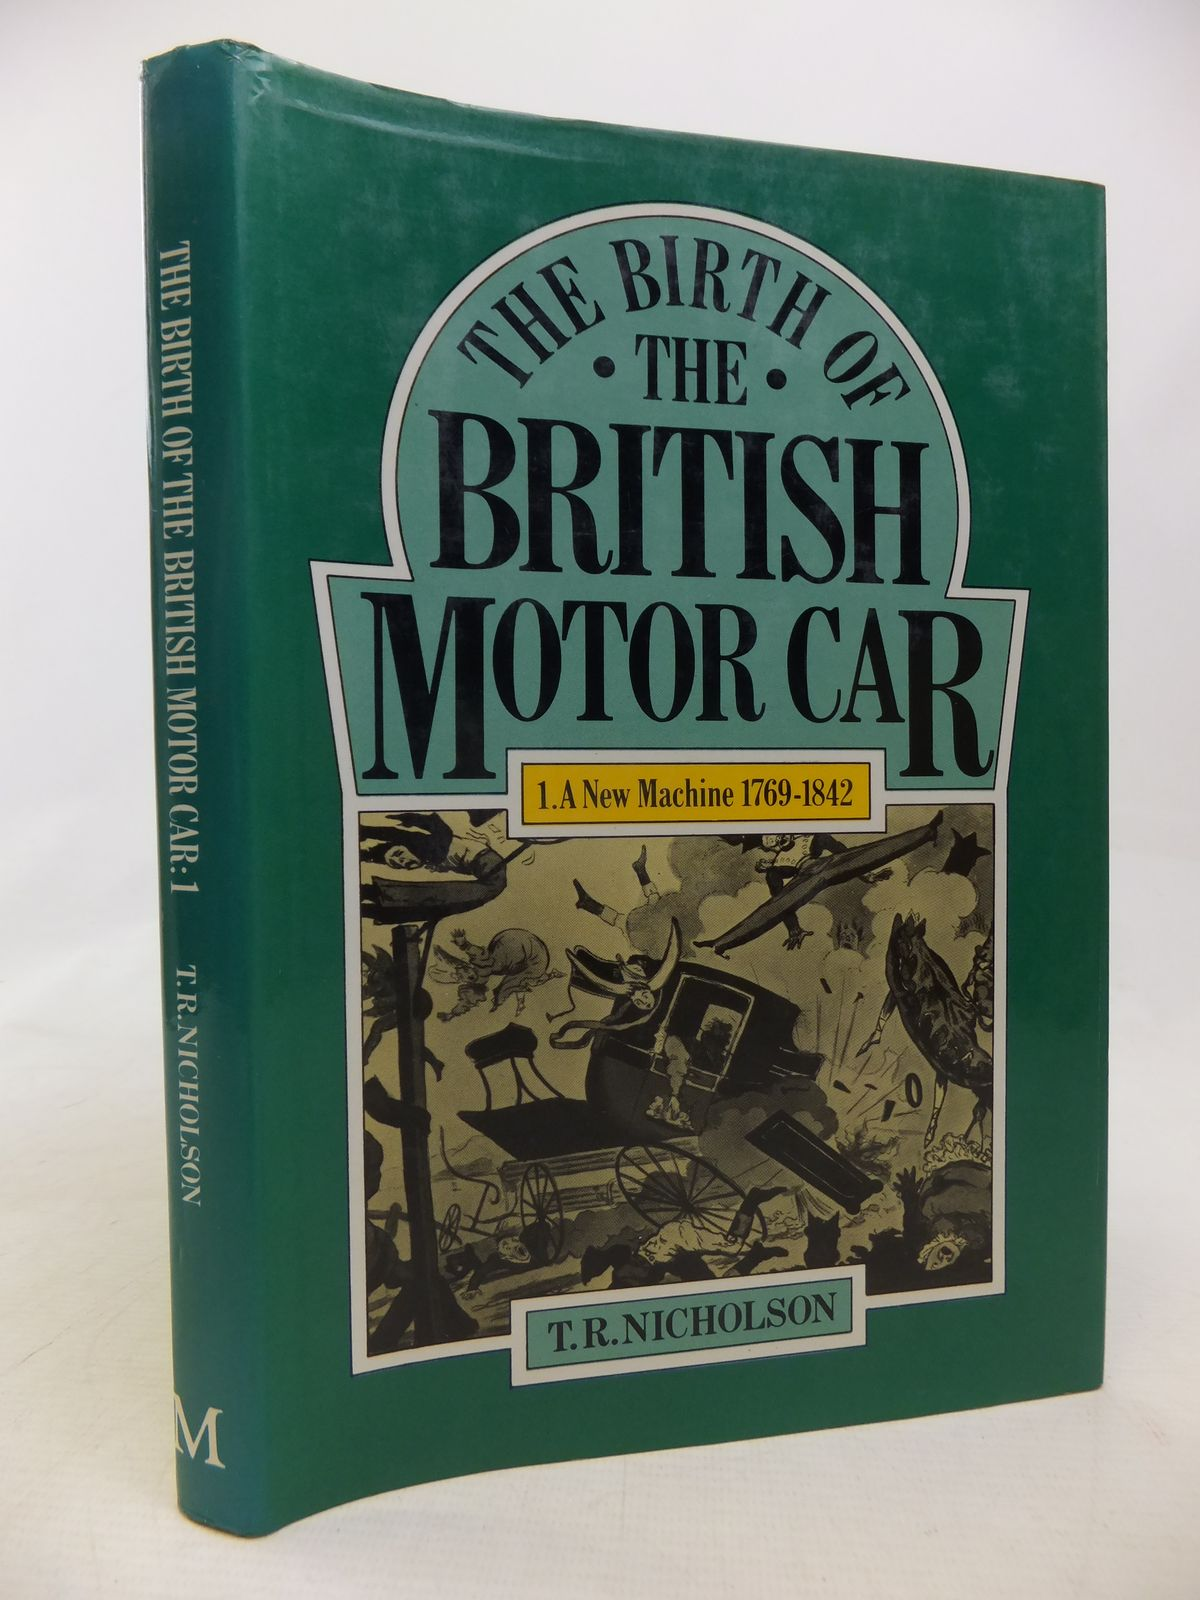 Photo of THE BIRTH OF THE BRITISH MOTOR CAR VOLUME 1 A NEW MACHINE 1769-1842 written by Nicholson, T.R. published by MacMillan (STOCK CODE: 1809963)  for sale by Stella & Rose's Books